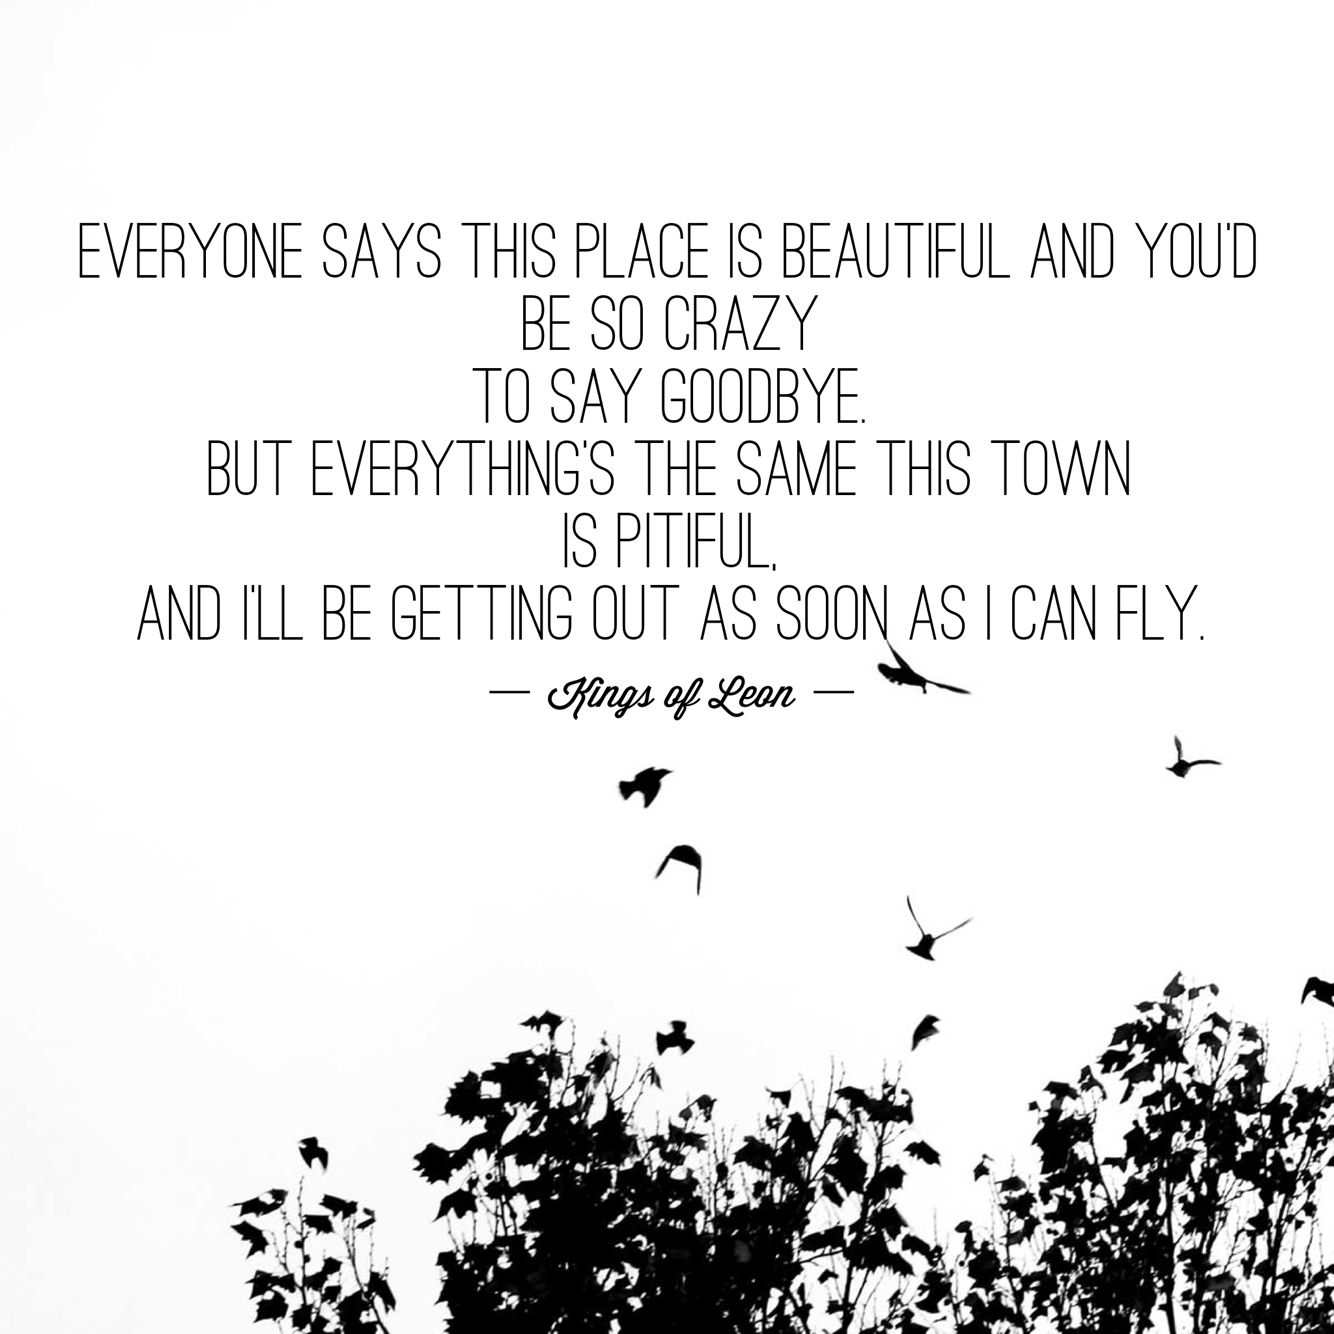 Getting Out As Soon As I Can Fly (Kings Of Leon Lyrics